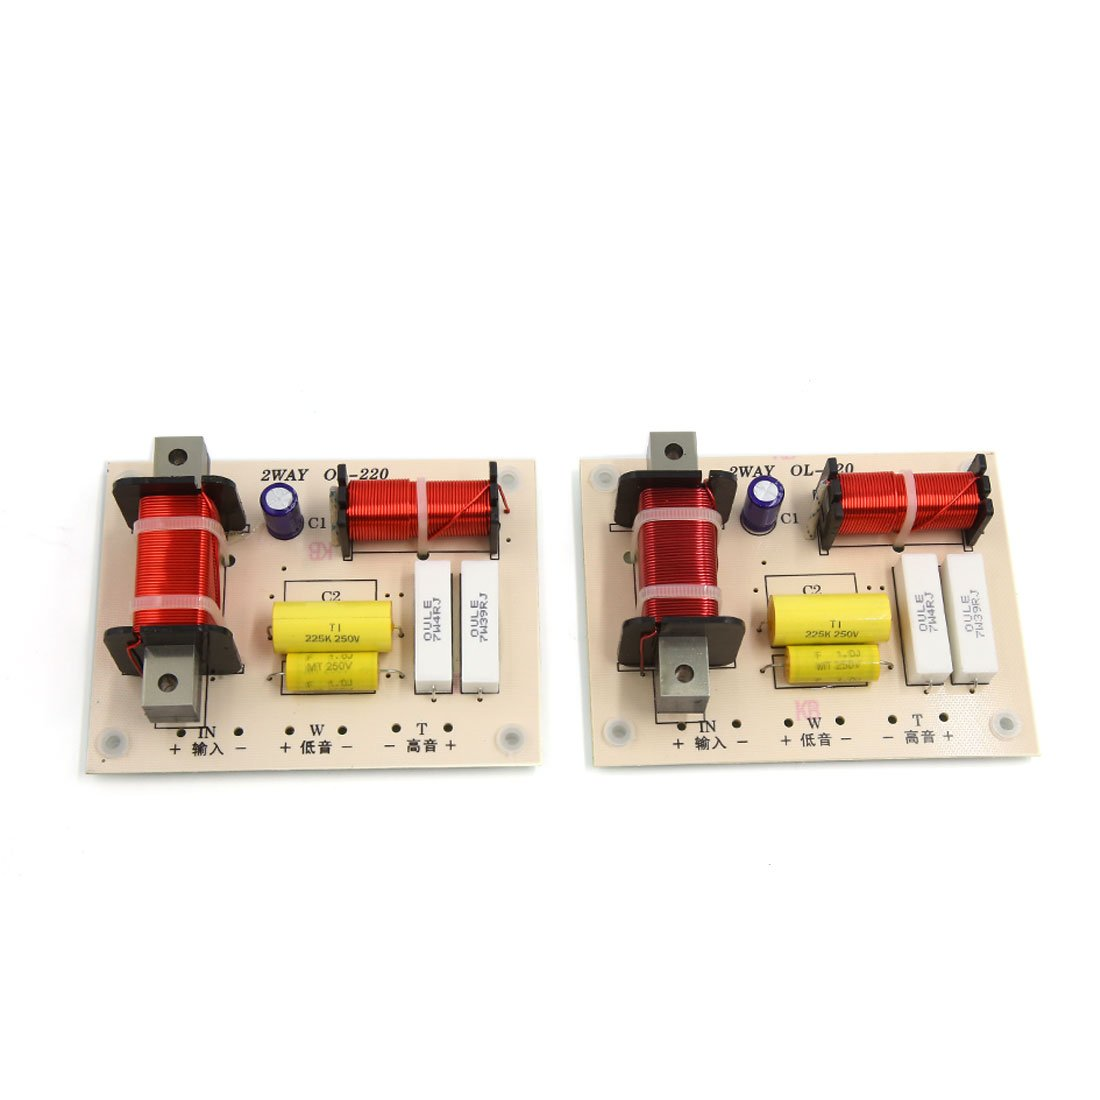 uxcell Crossover Filter Frequency Divider